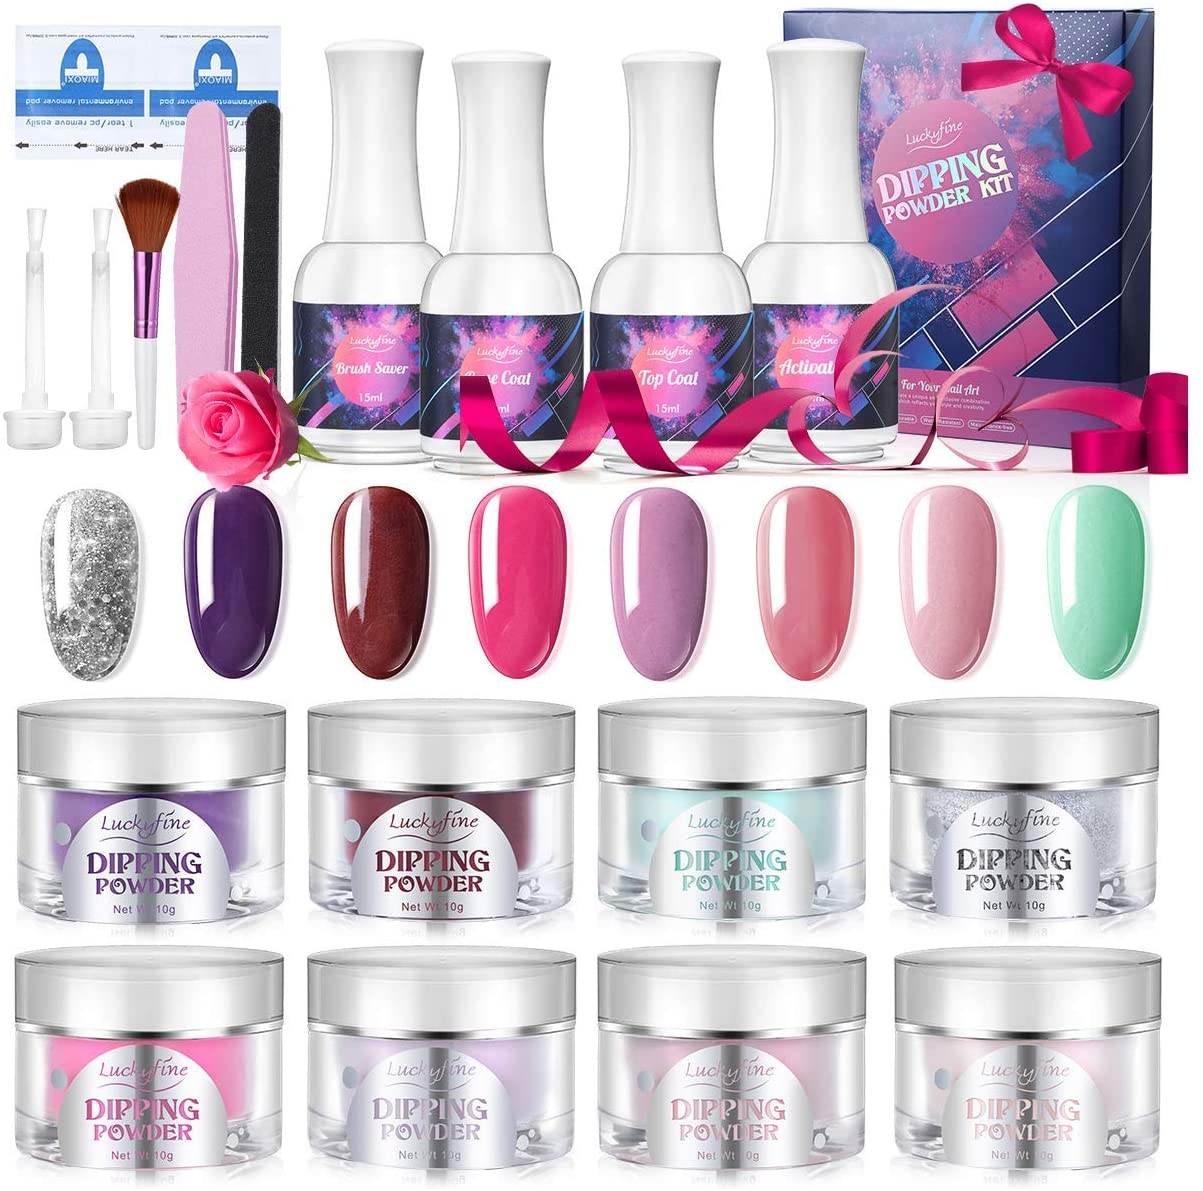 Luckyfine Dipping Nail Powder Kit